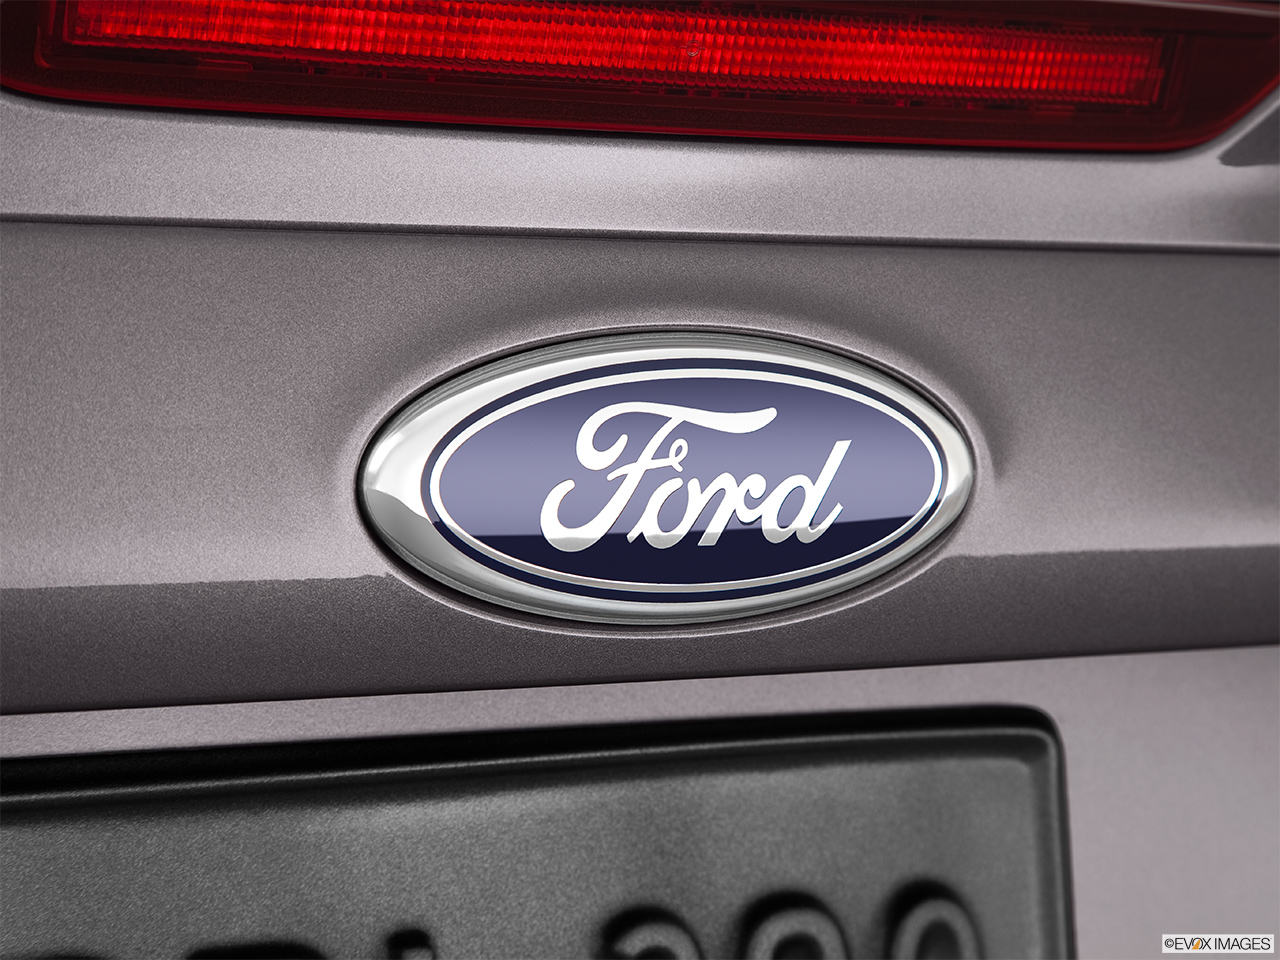 2014 ford focus sedan s rear manufacture badgeemblem